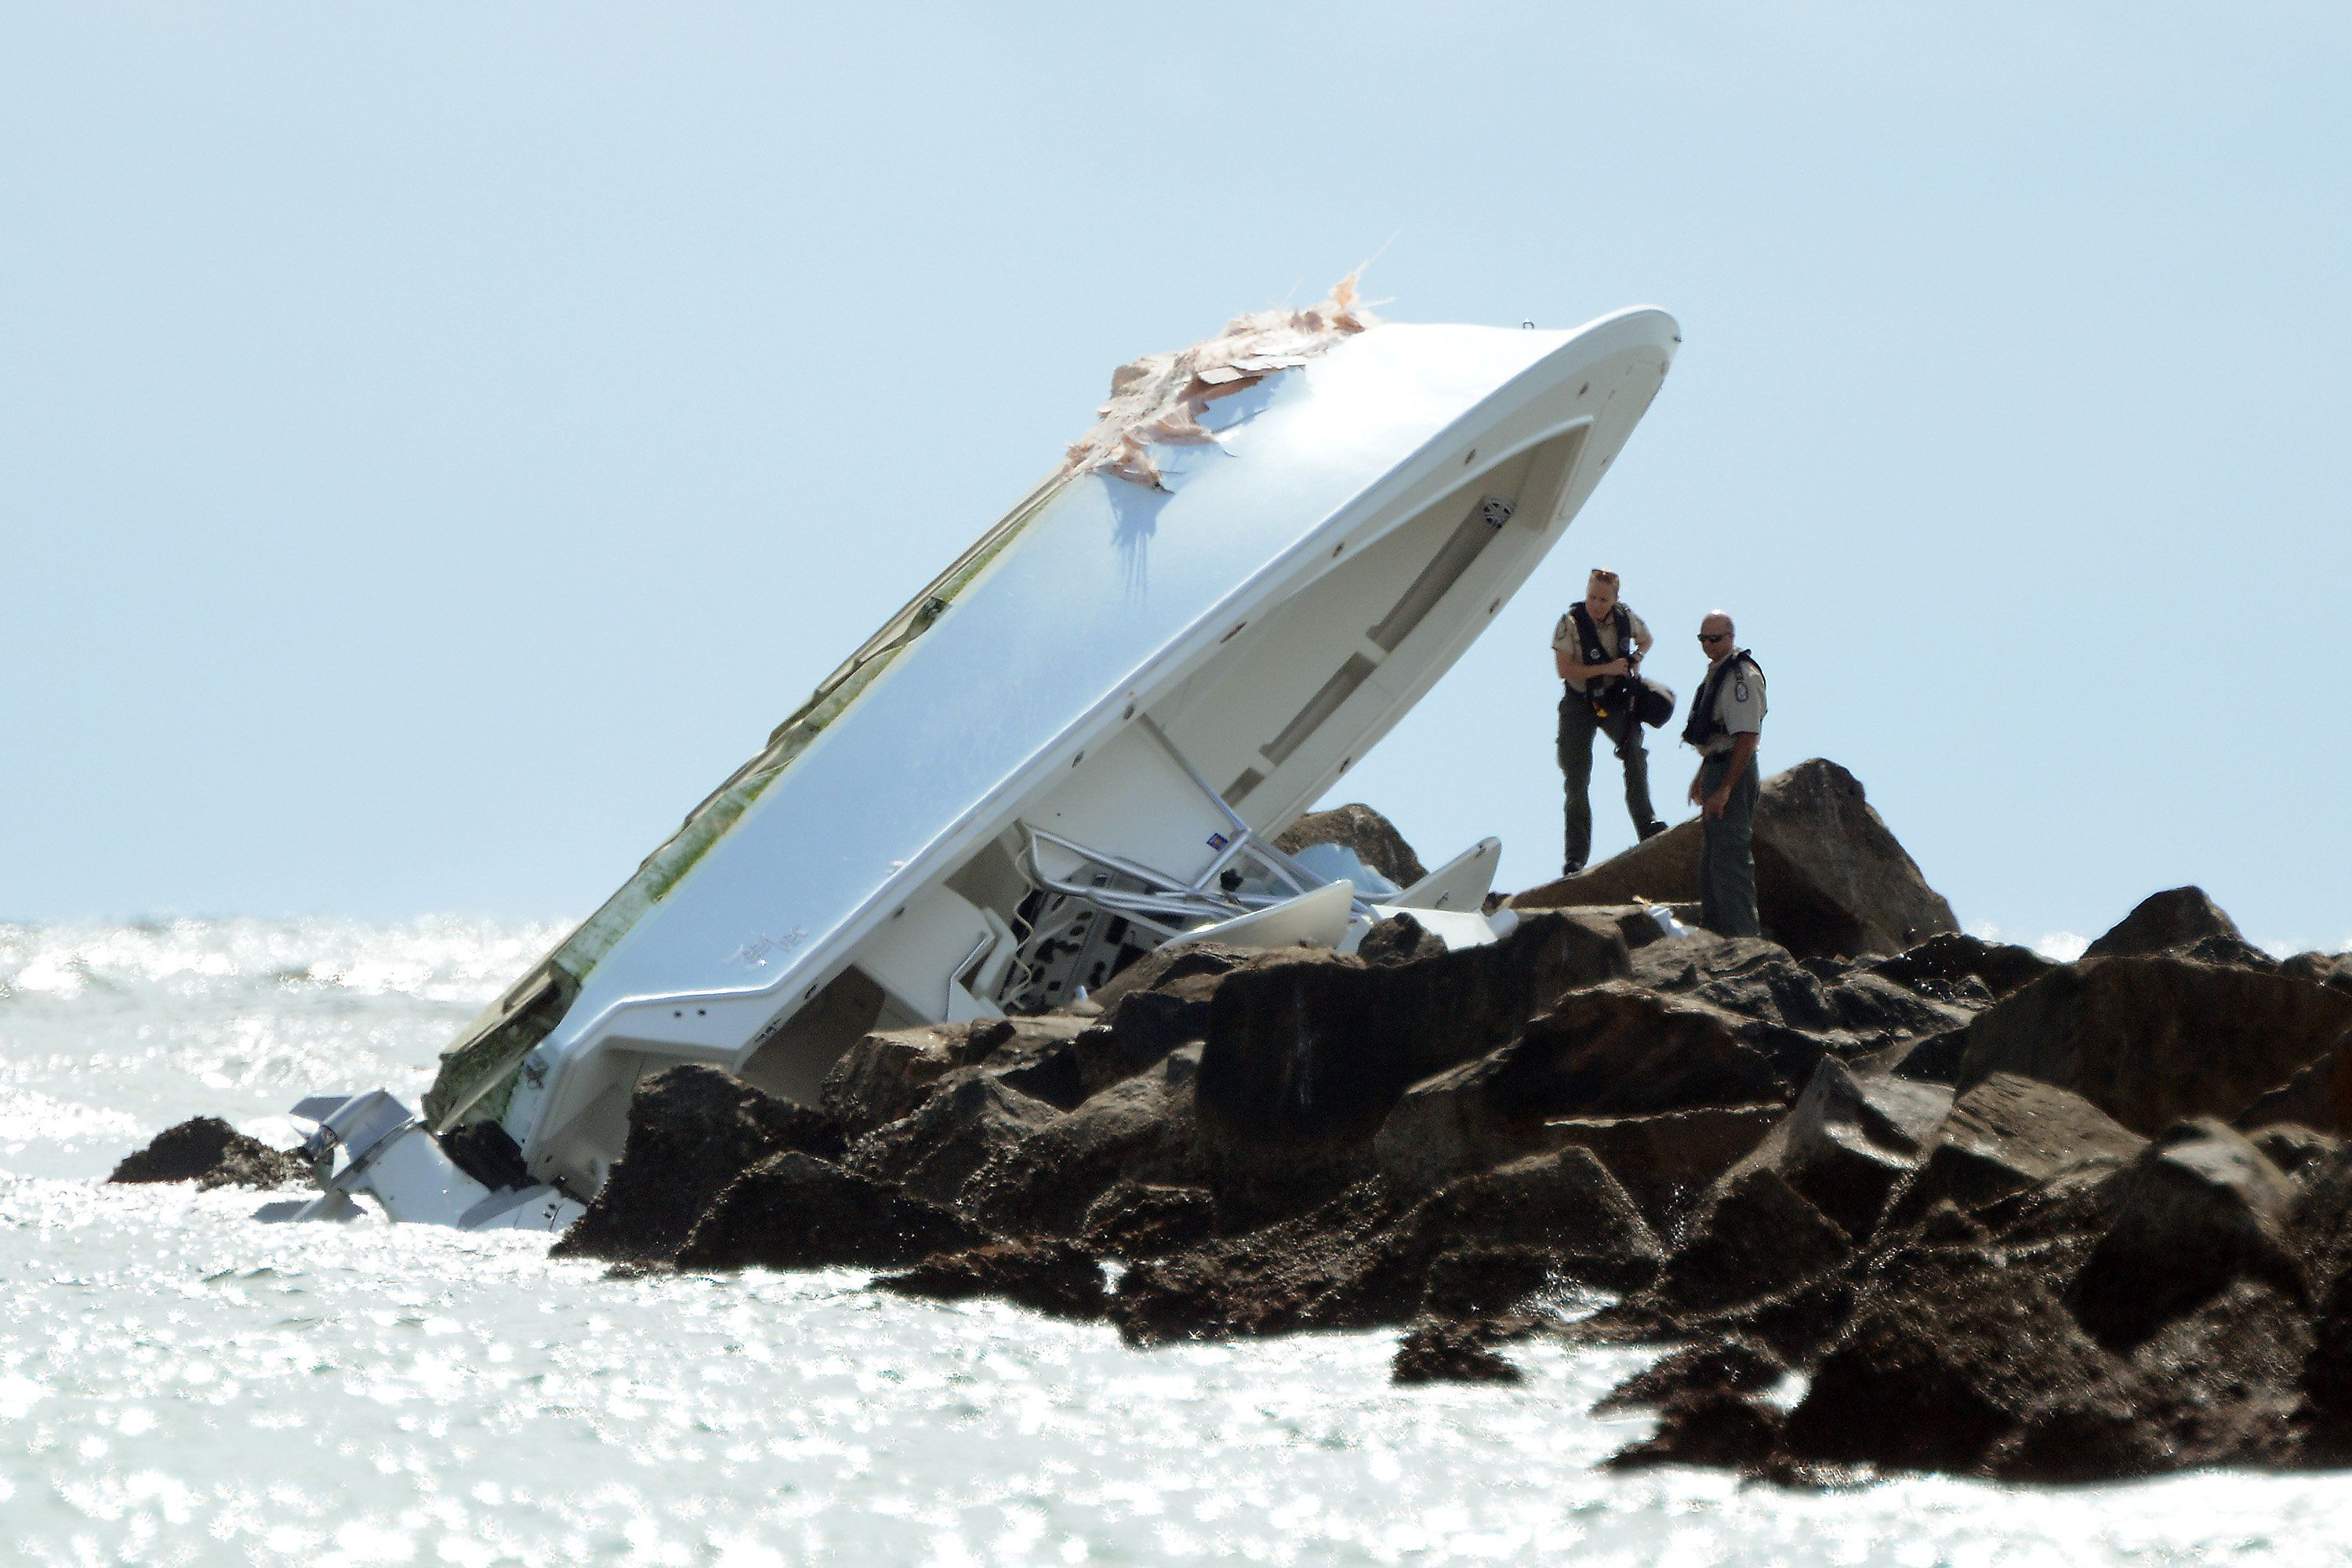 Investigators look over the overturned boat in which Miami Marlins pitcher Jose Fernandez was killed, Sunday, Sept. 25, 2016, in Maimi Beach. (Joe Caveretta/Sun Sentinel/TNS via Getty Images)